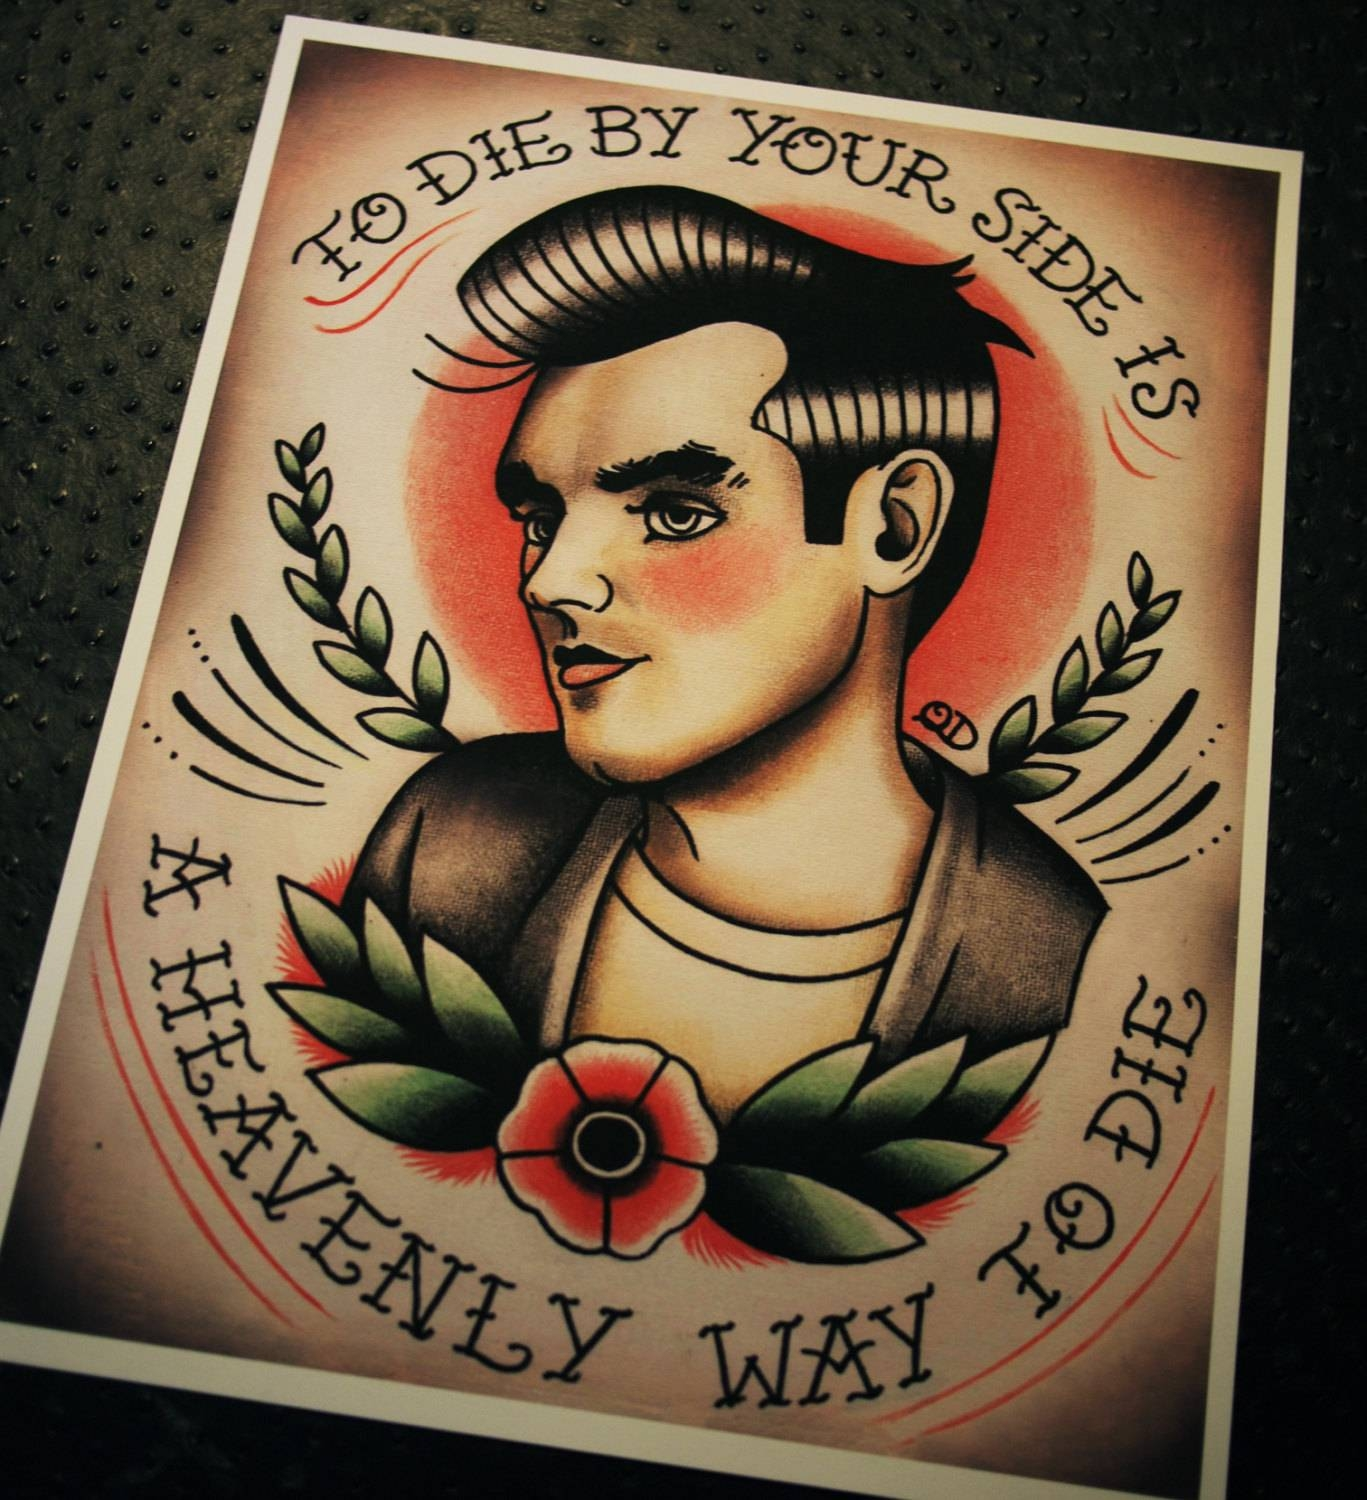 Traditional Tattoo Flash And Wall Art Photo – 4: Real Photo Throughout Newest Tattoos Wall Art (View 18 of 20)